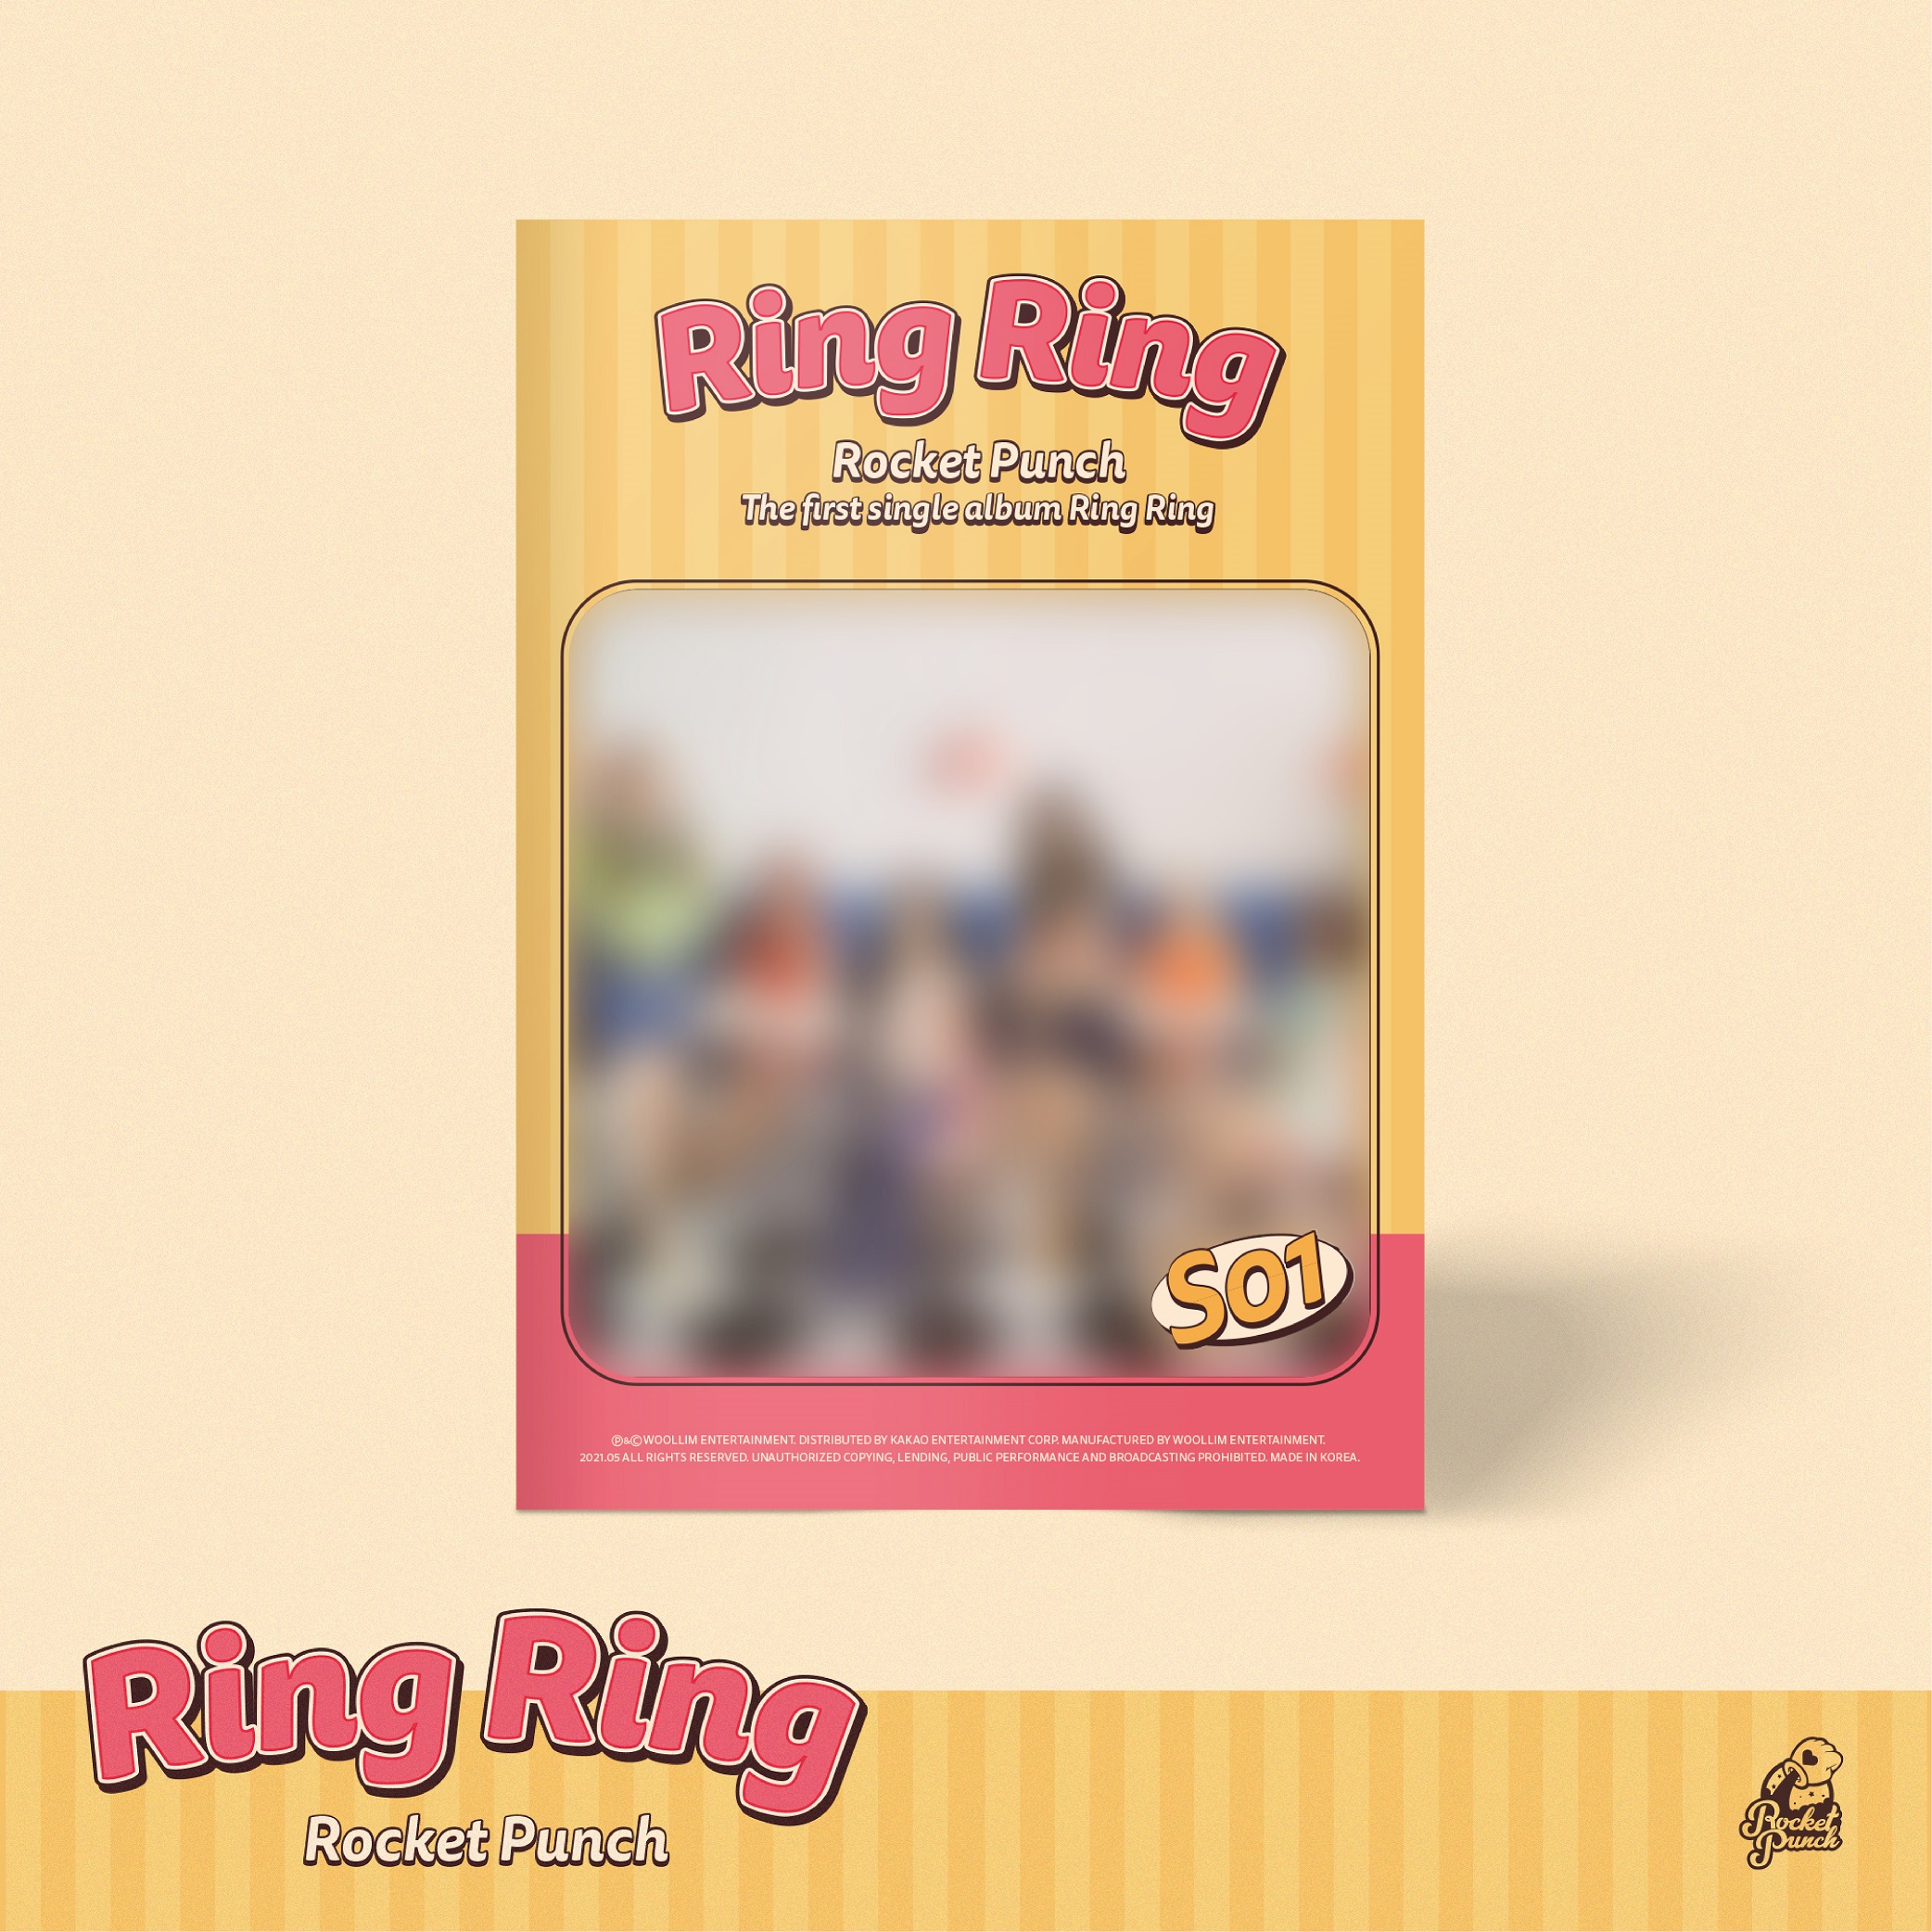 ROCKET PUNCH 1st Single Album [Ring Ring]